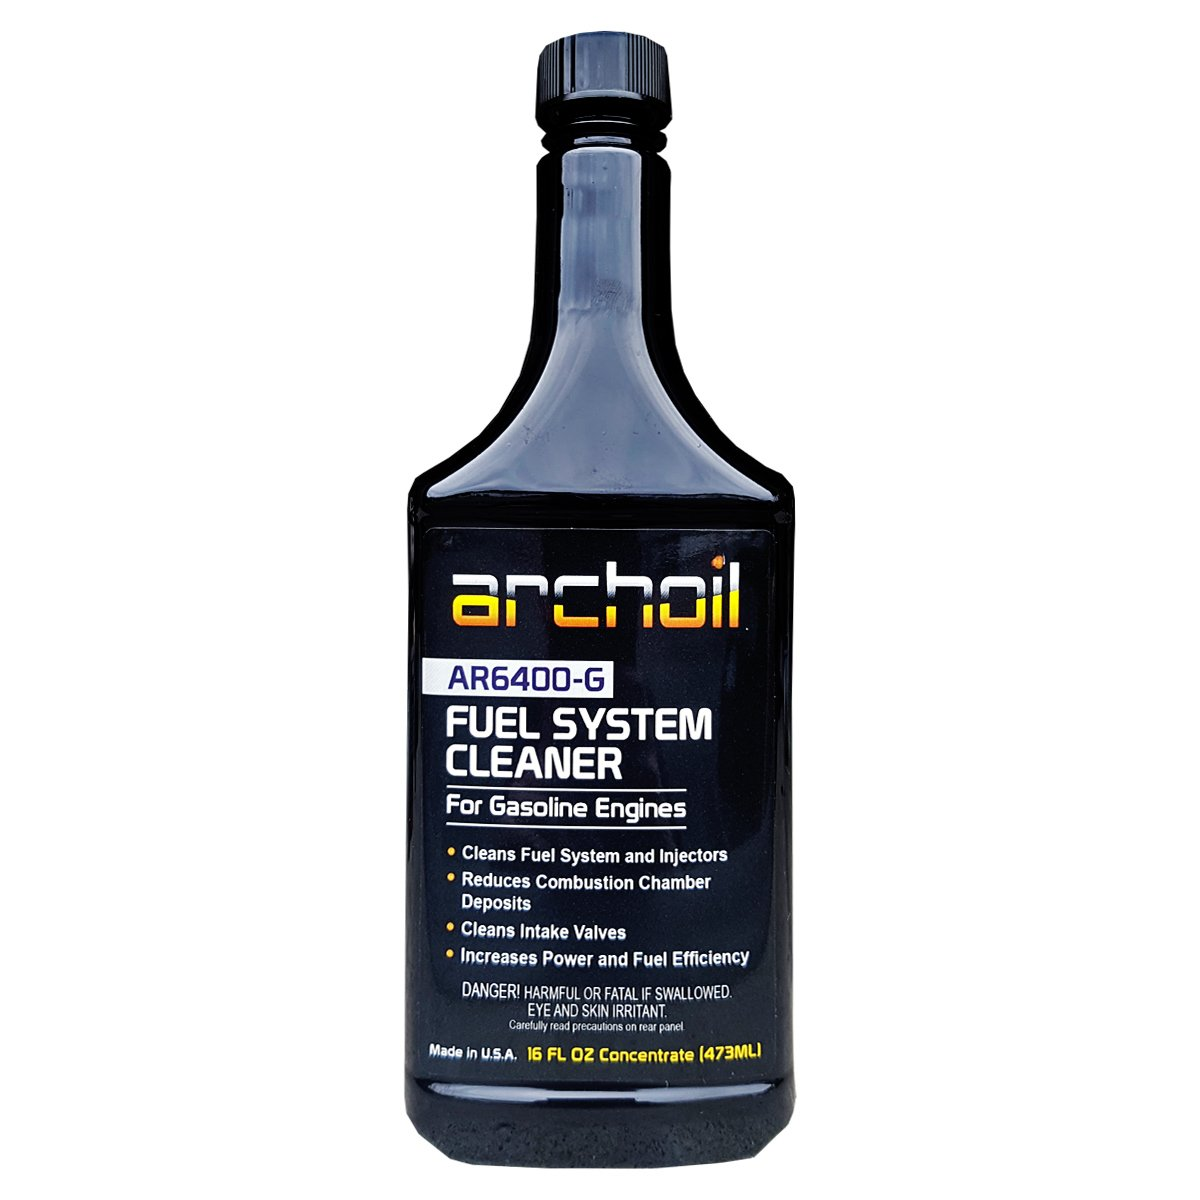 AR6400-G (16Oz) - Professional Fuel System and Engine Cleaner (Treats 25 Gallons of Gasoline) ARCHOIL AR6400-16 G